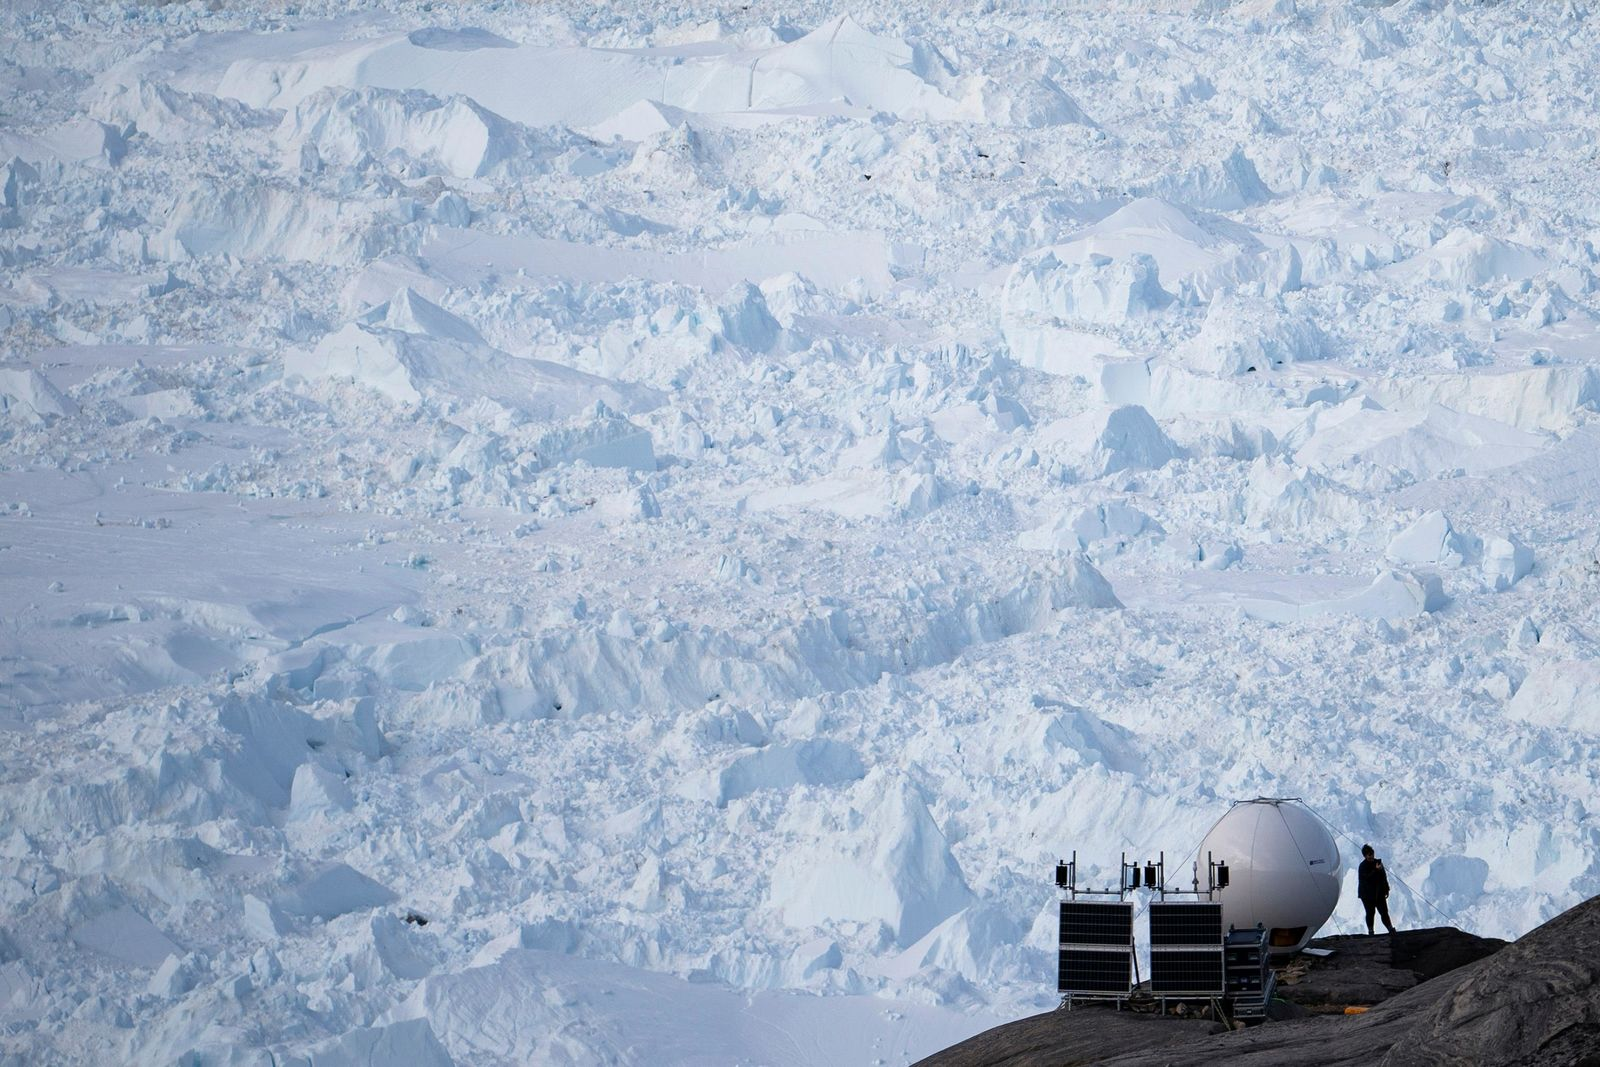 In this Aug. 16, 2019, photo, a woman stands next to an antenna at an NYU base camp at the Helheim glacier in Greenland. Summer 2019 is hitting the island hard with record-shattering heat and extreme melt.{ } (AP Photo/Felipe Dana)